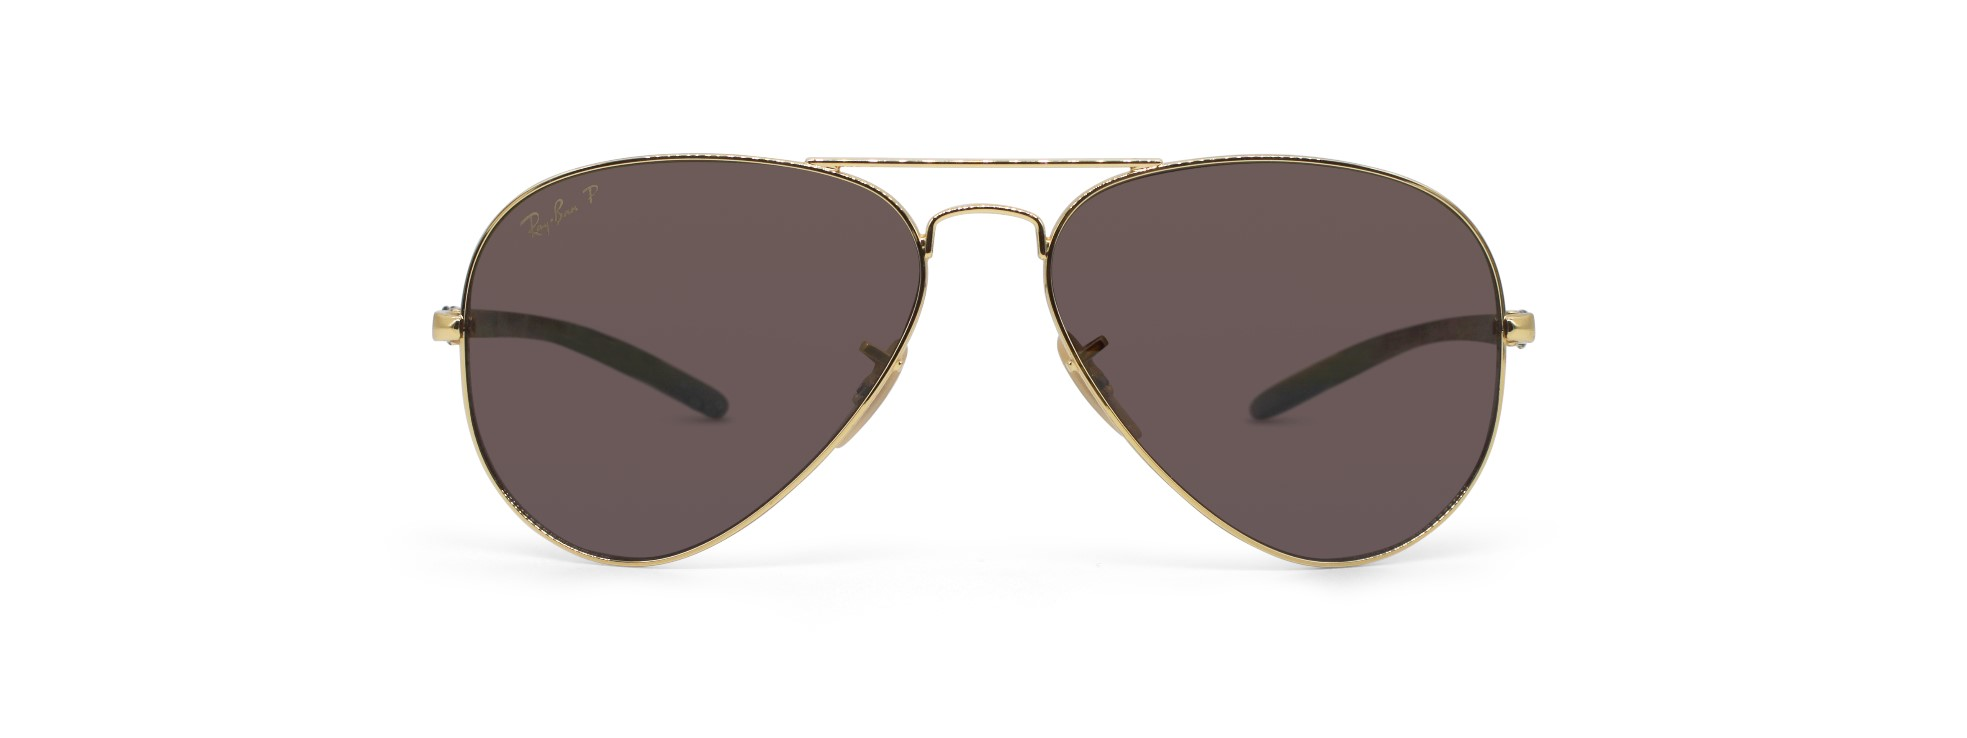 Aviators by Ray-Ban